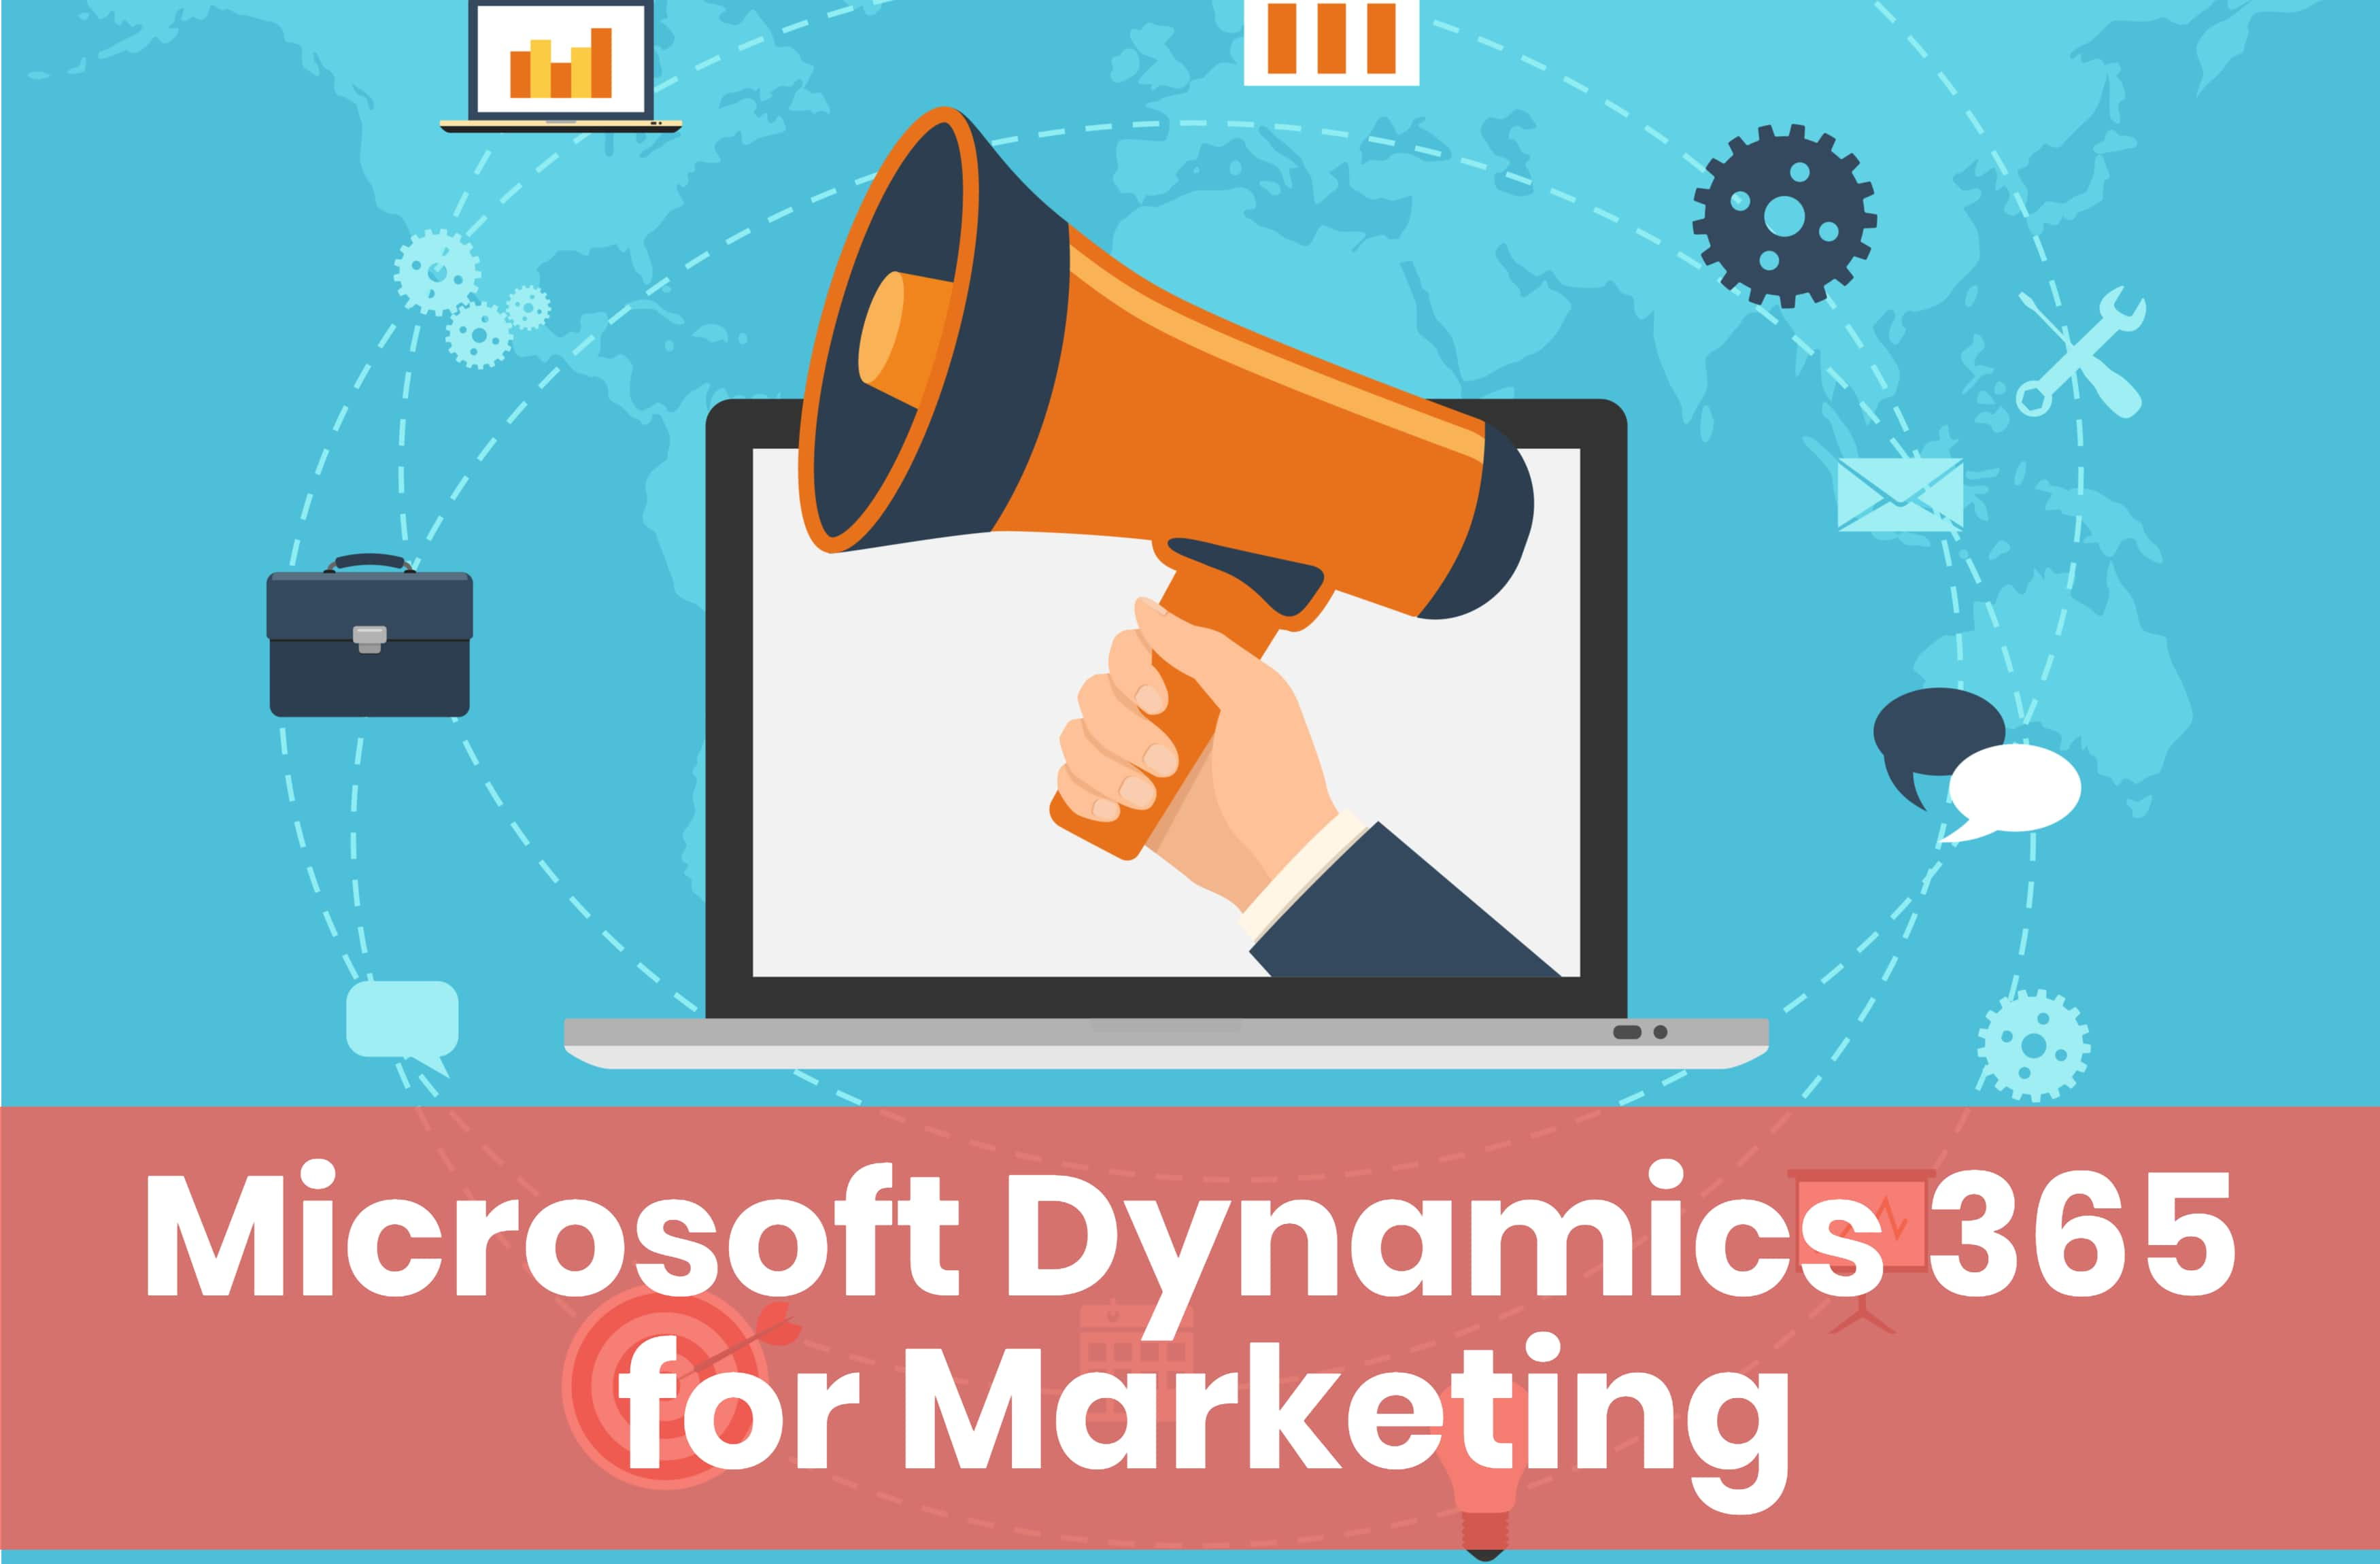 Microsoft Dynamics 365 Improves Marketing for SMBs